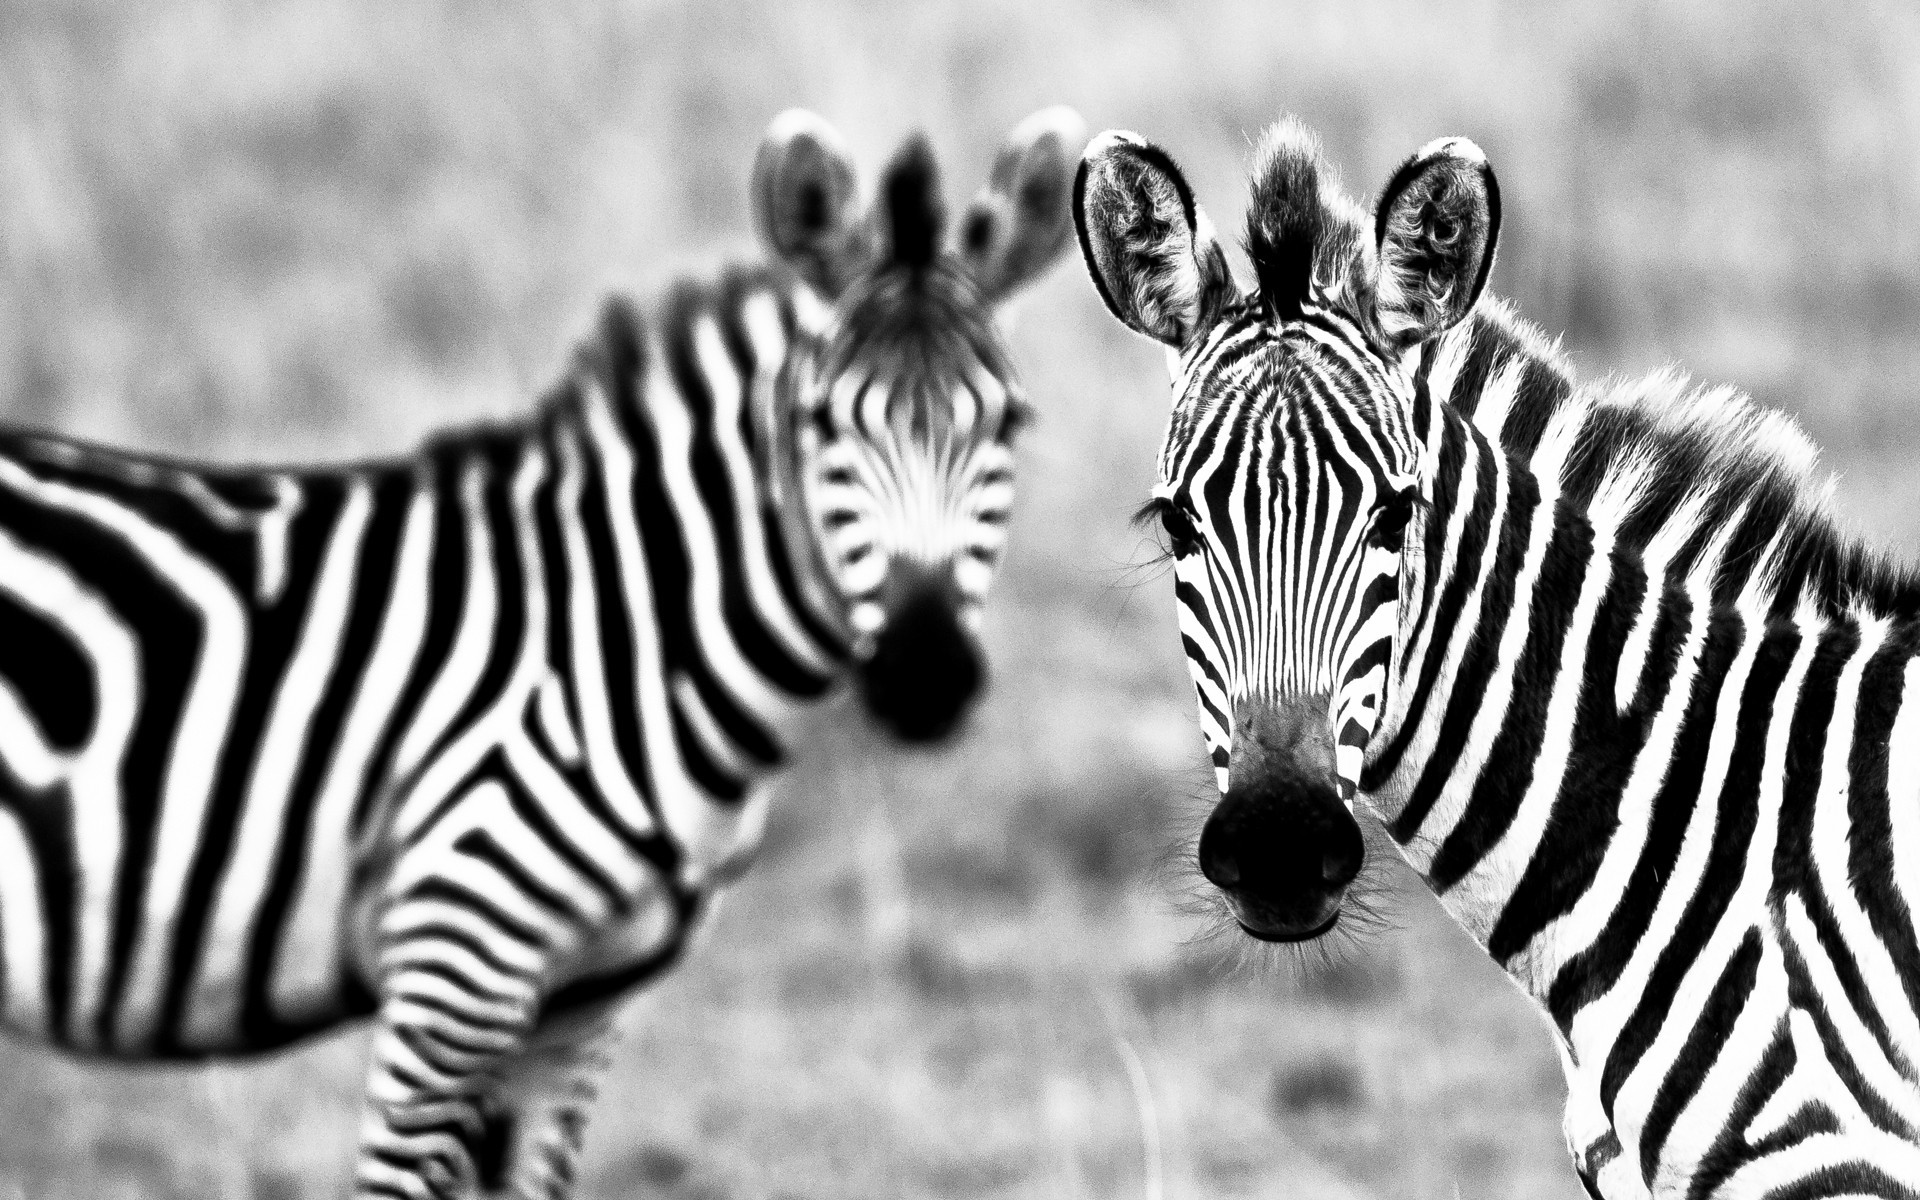 Animals zebras grayscale